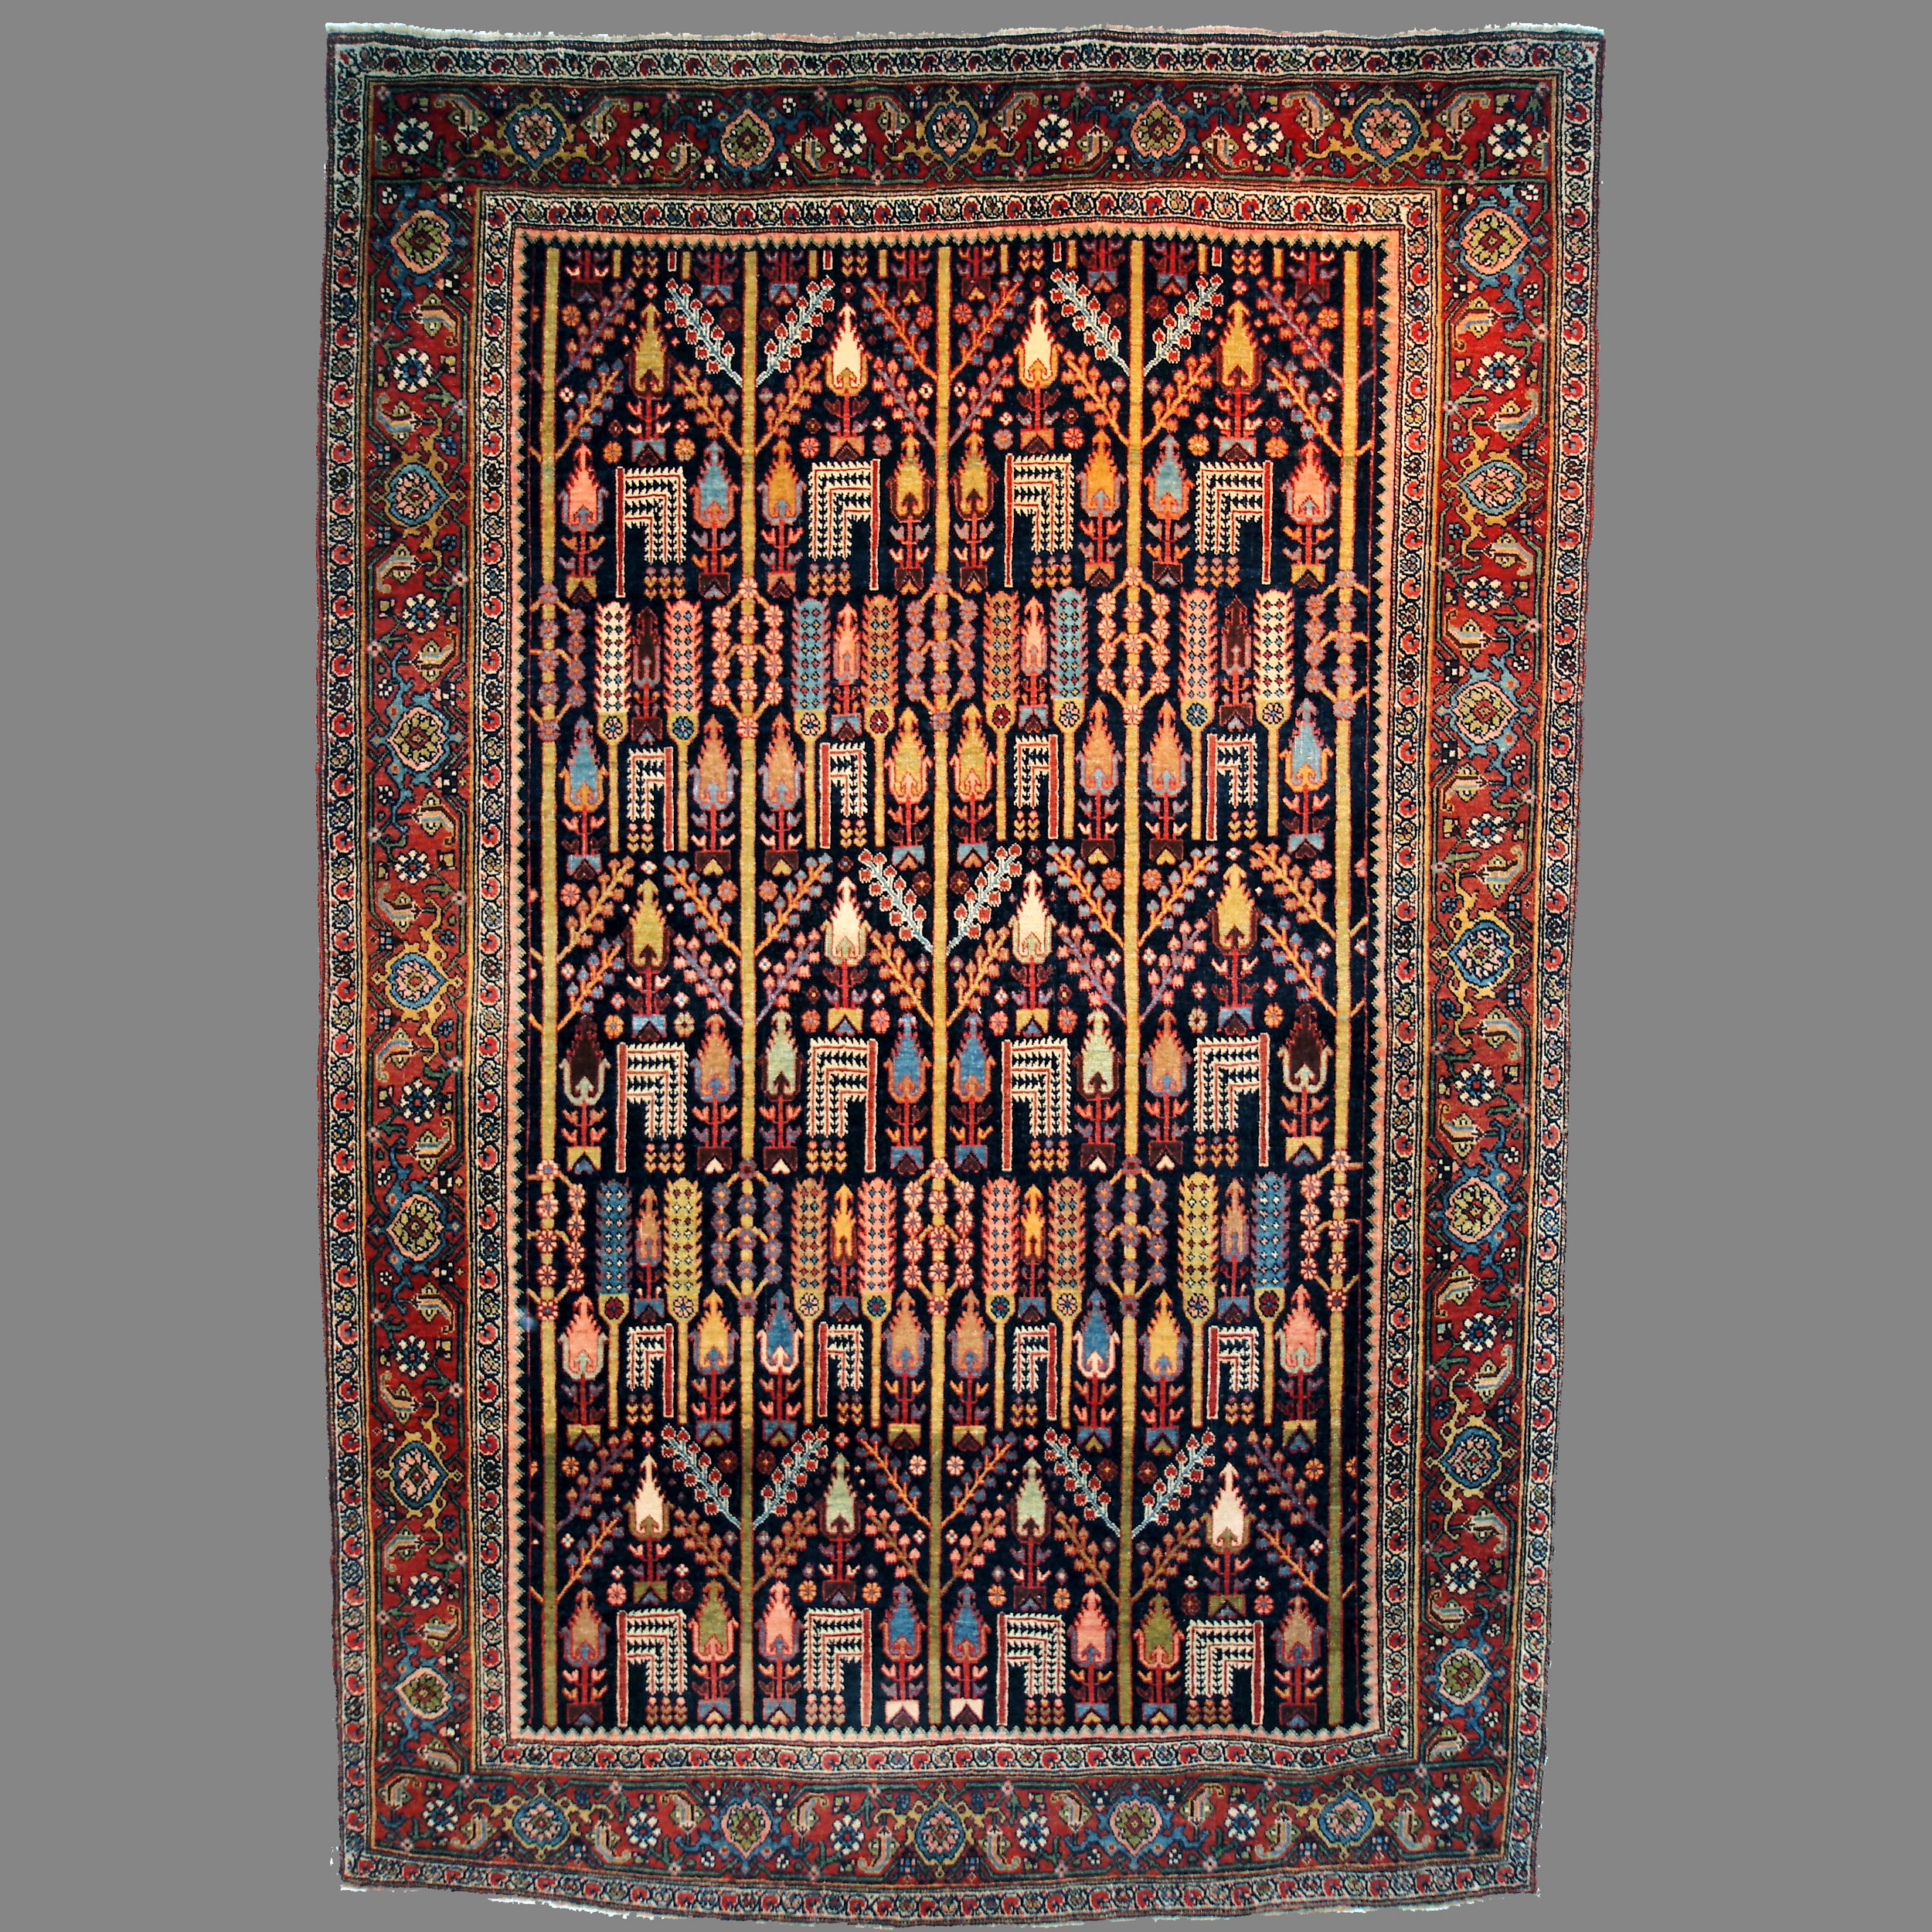 4.8 x 7 19th century antique Persian Bidjar rug with the Bid Majnun design of Cypress and Willow trees - Douglas Stock Gallery Antique Rug Research Archives